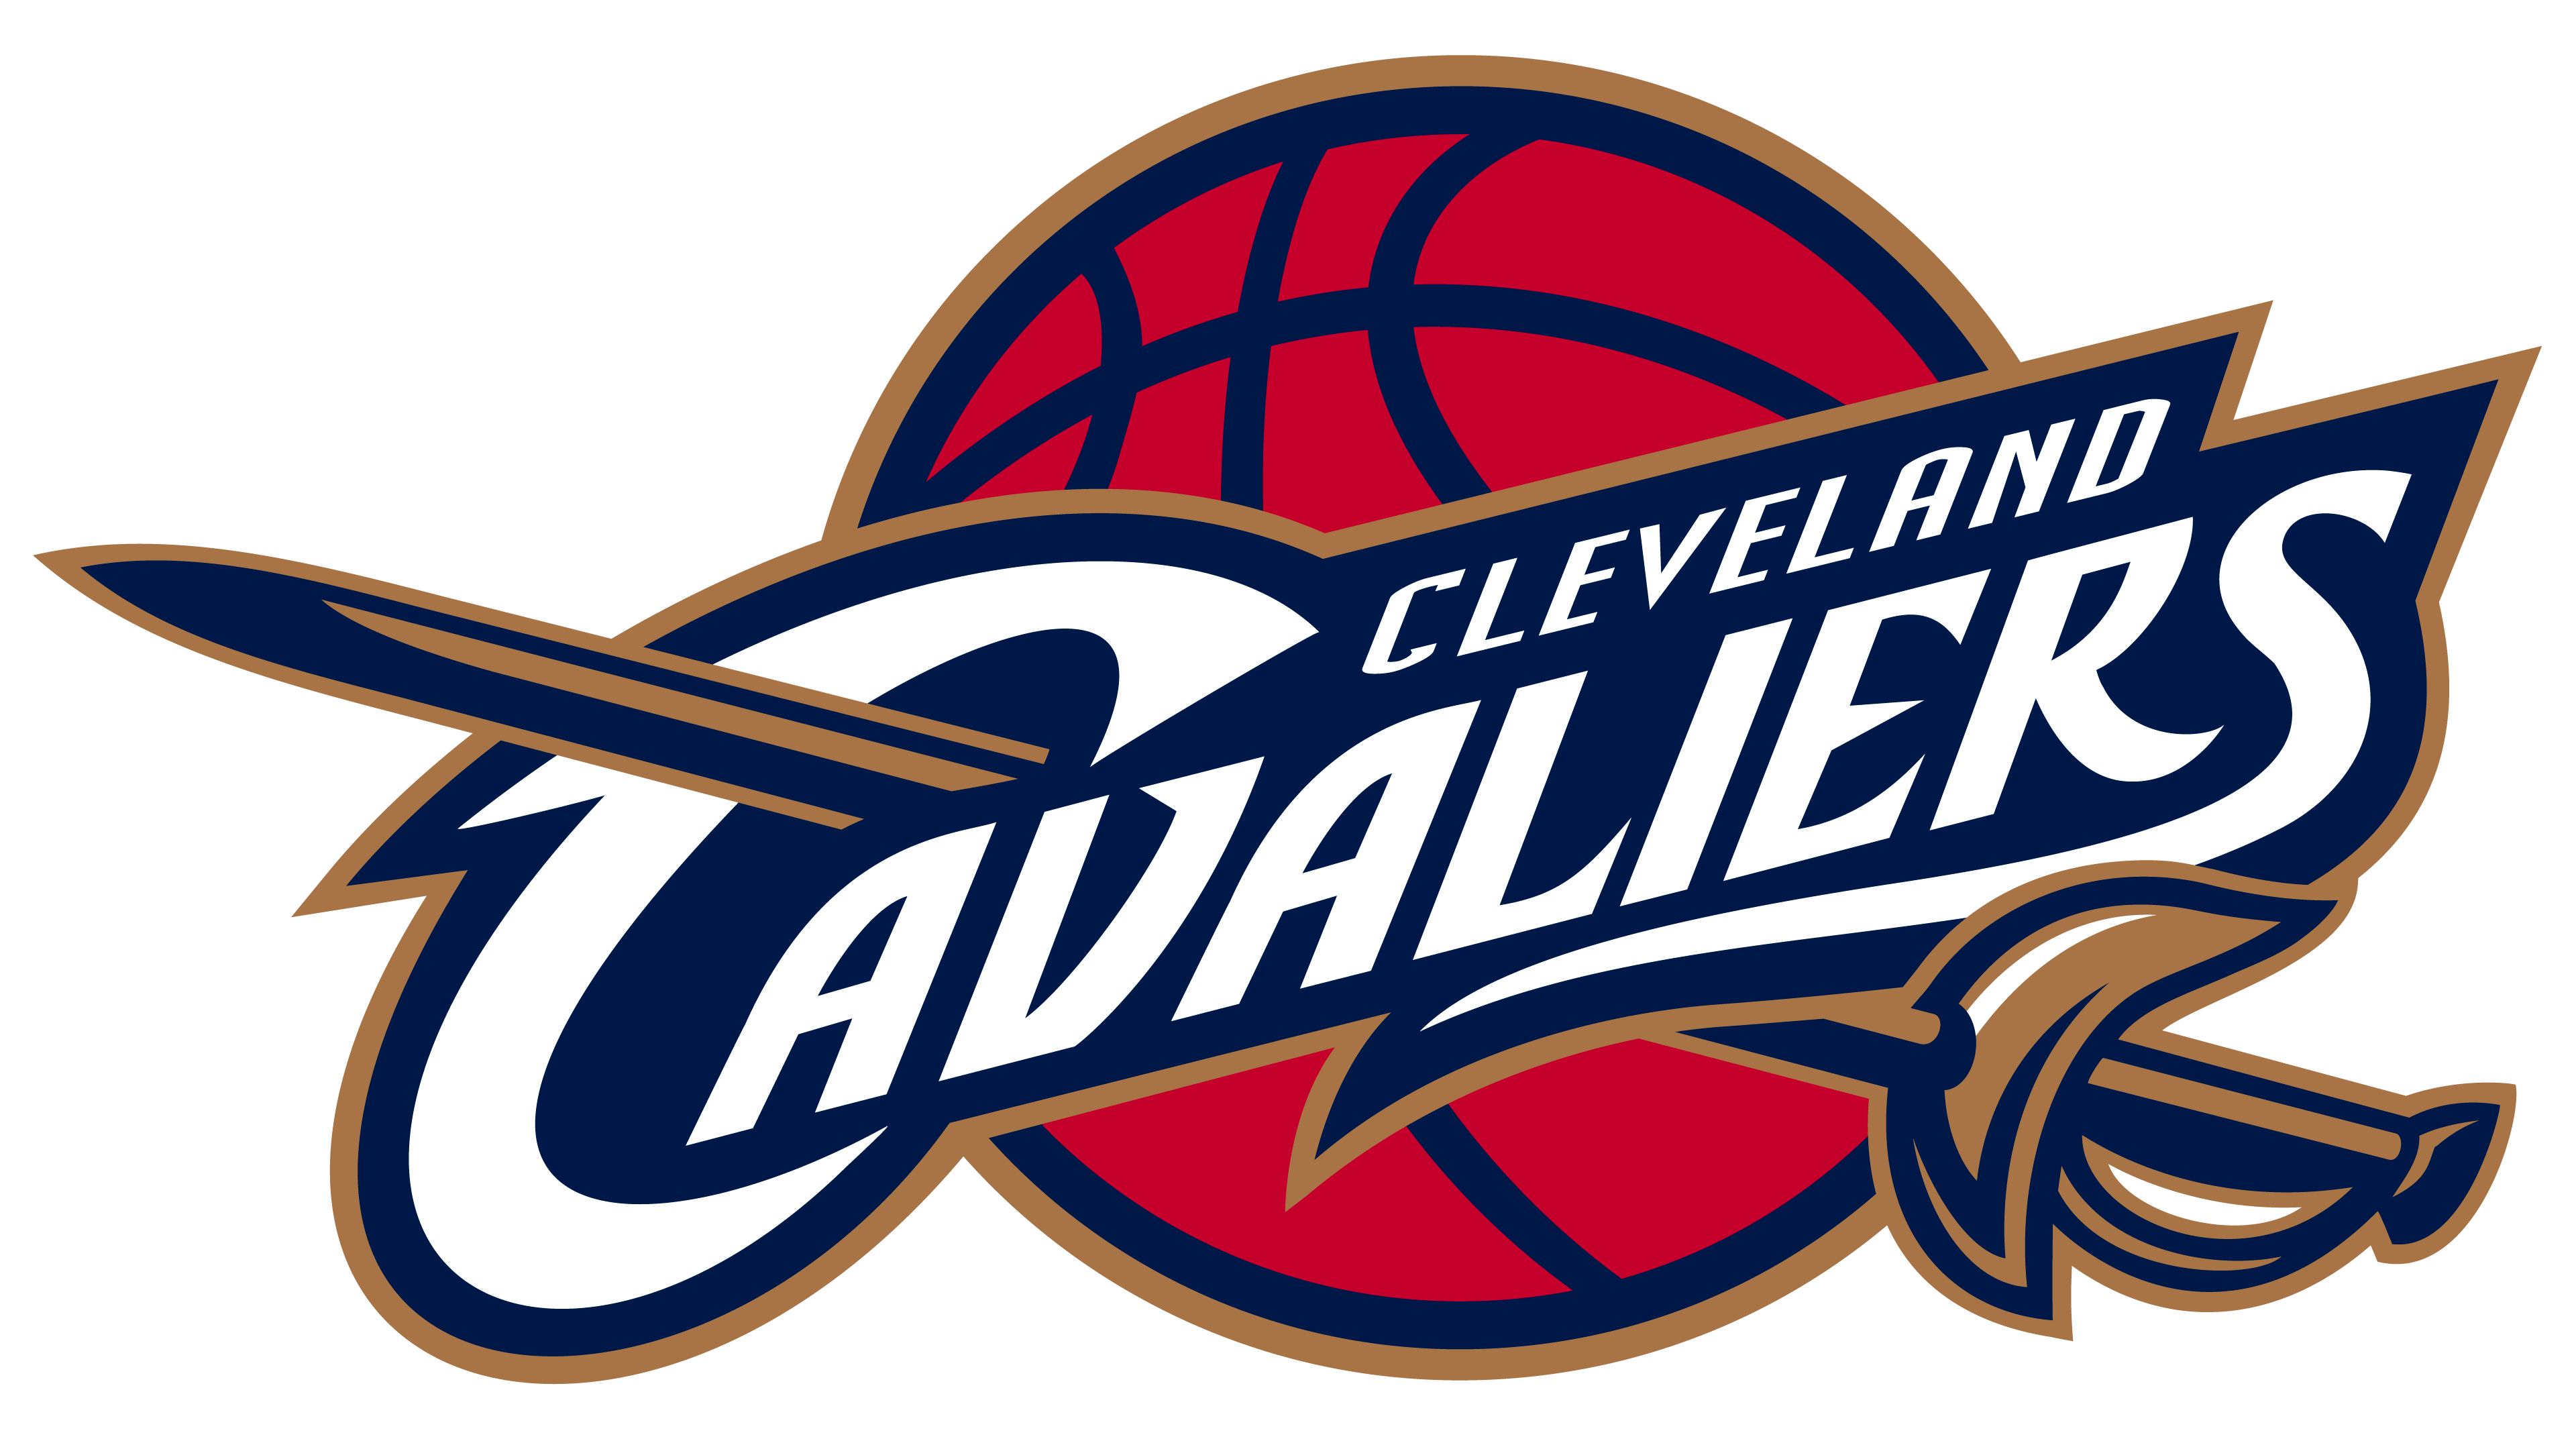 Cleveland Cavaliers logos.